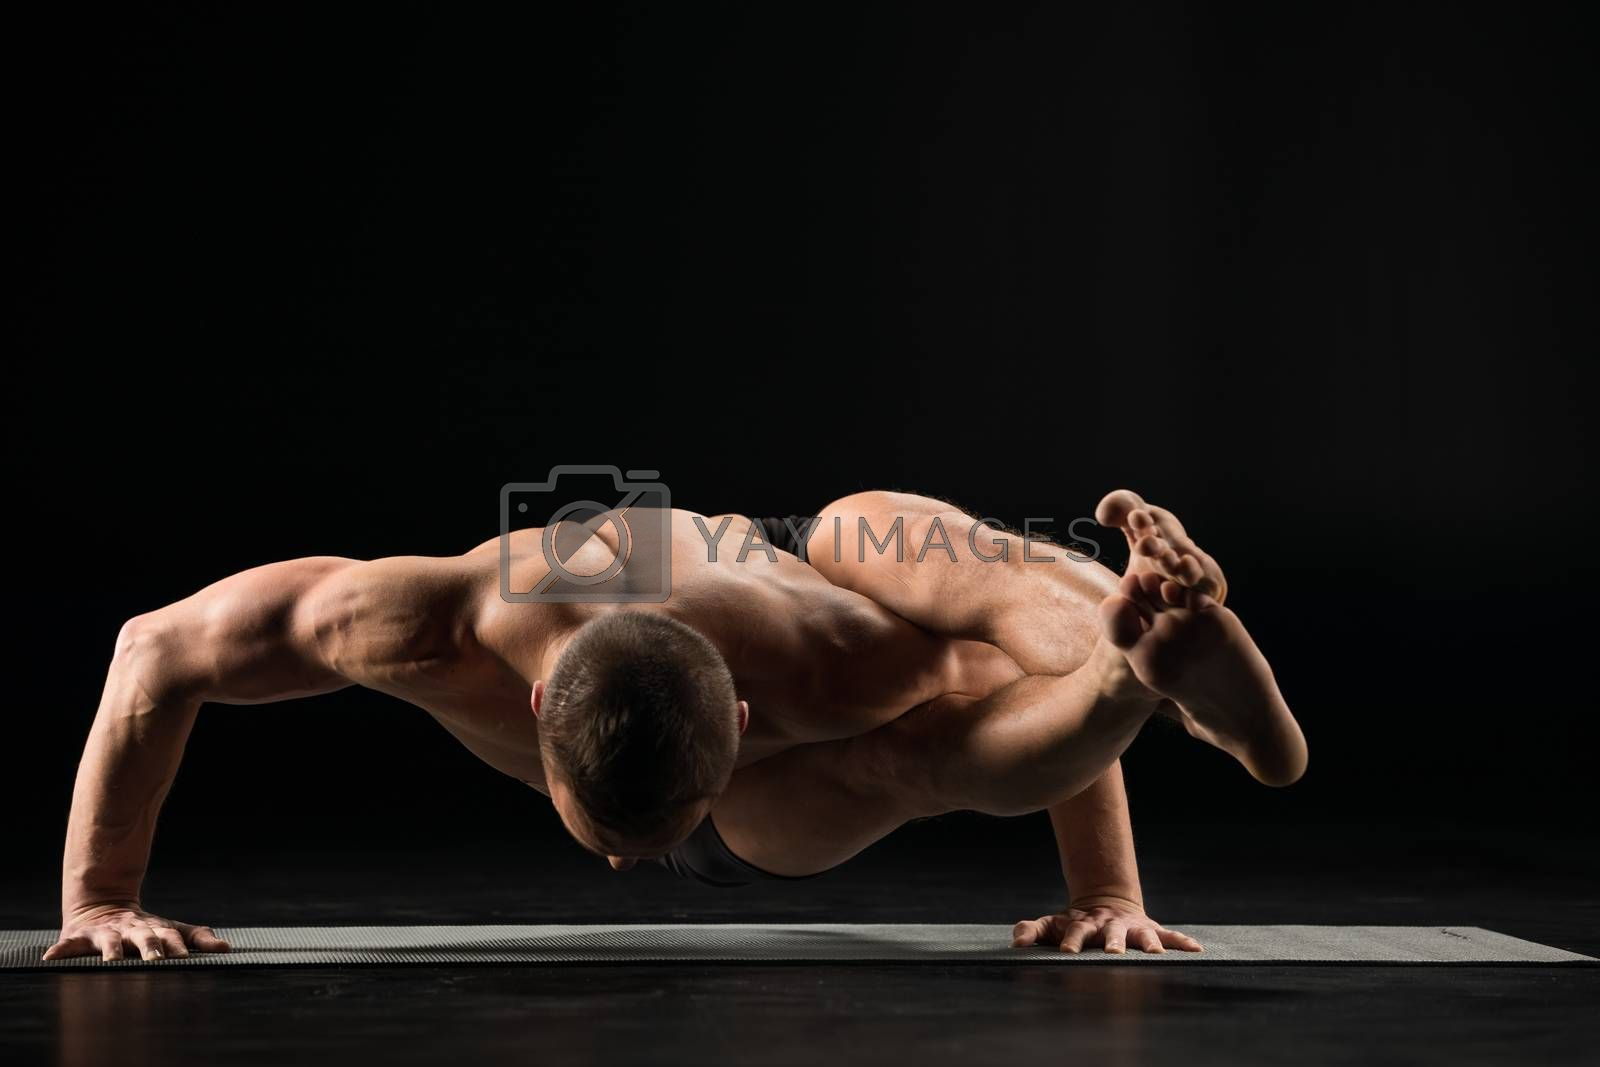 Young man practicing yoga doing an asana astavakrasana on yoga mat